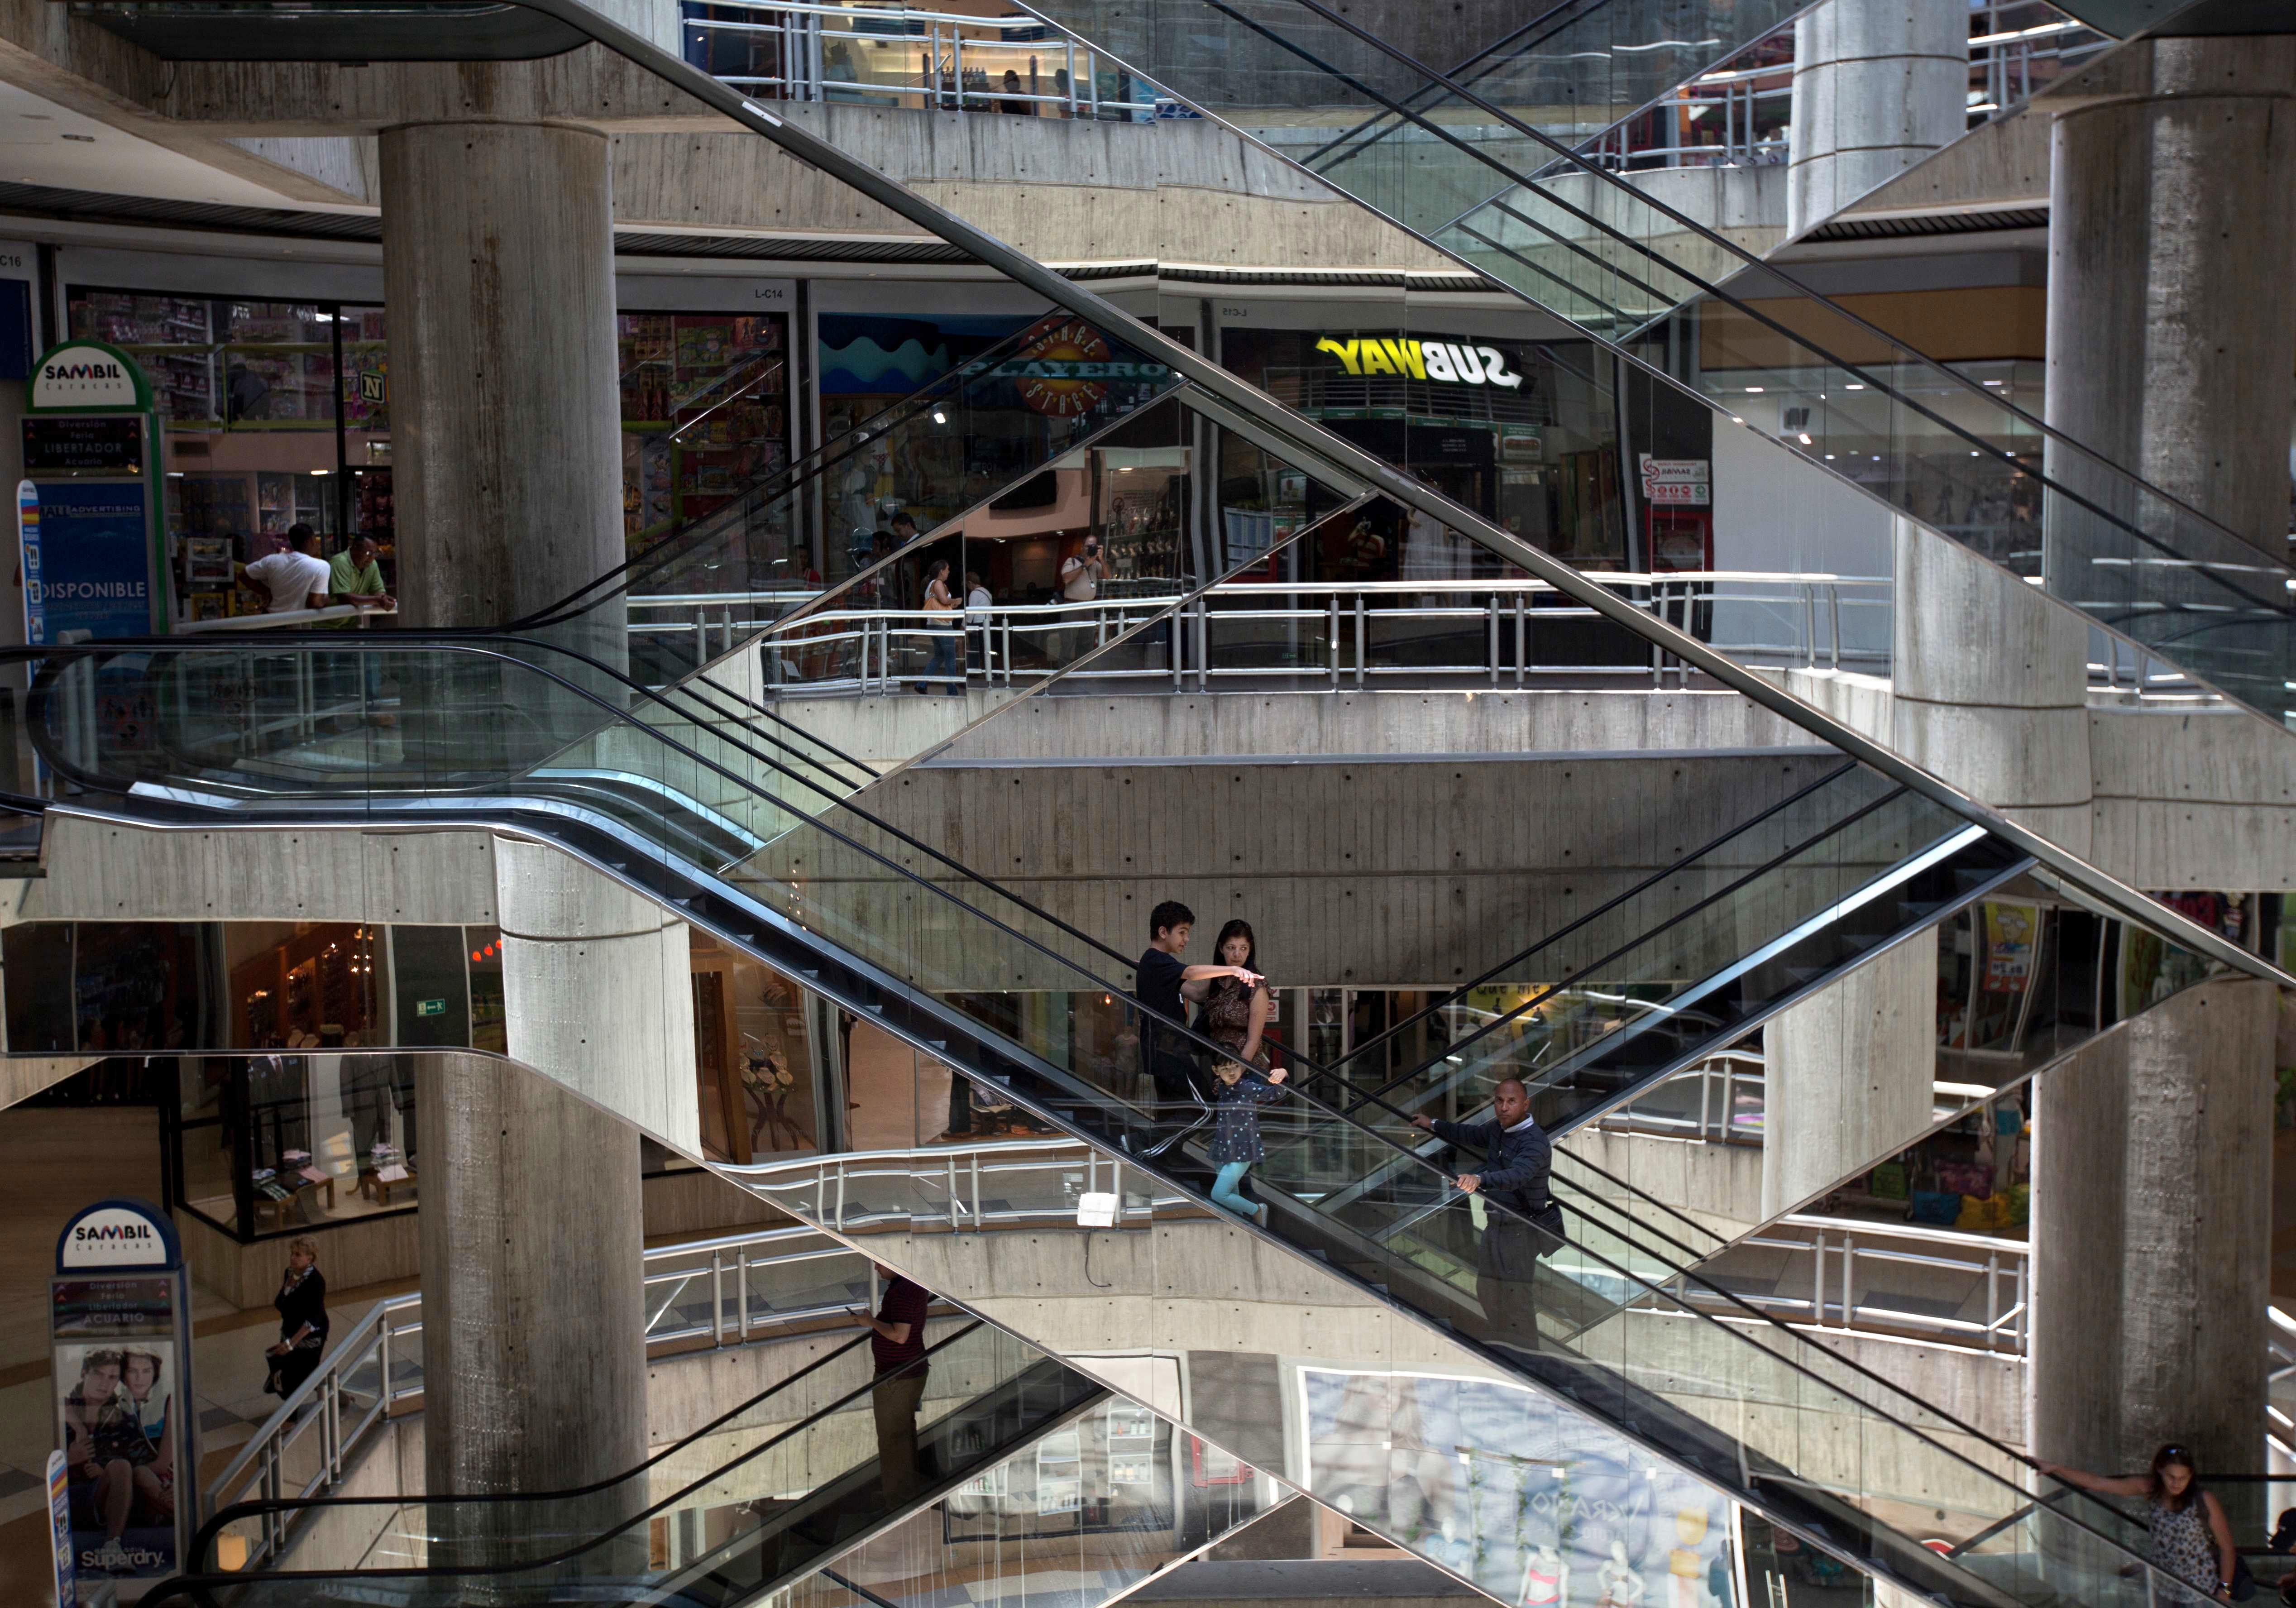 Venezuela malls scale back hours as government cuts energy